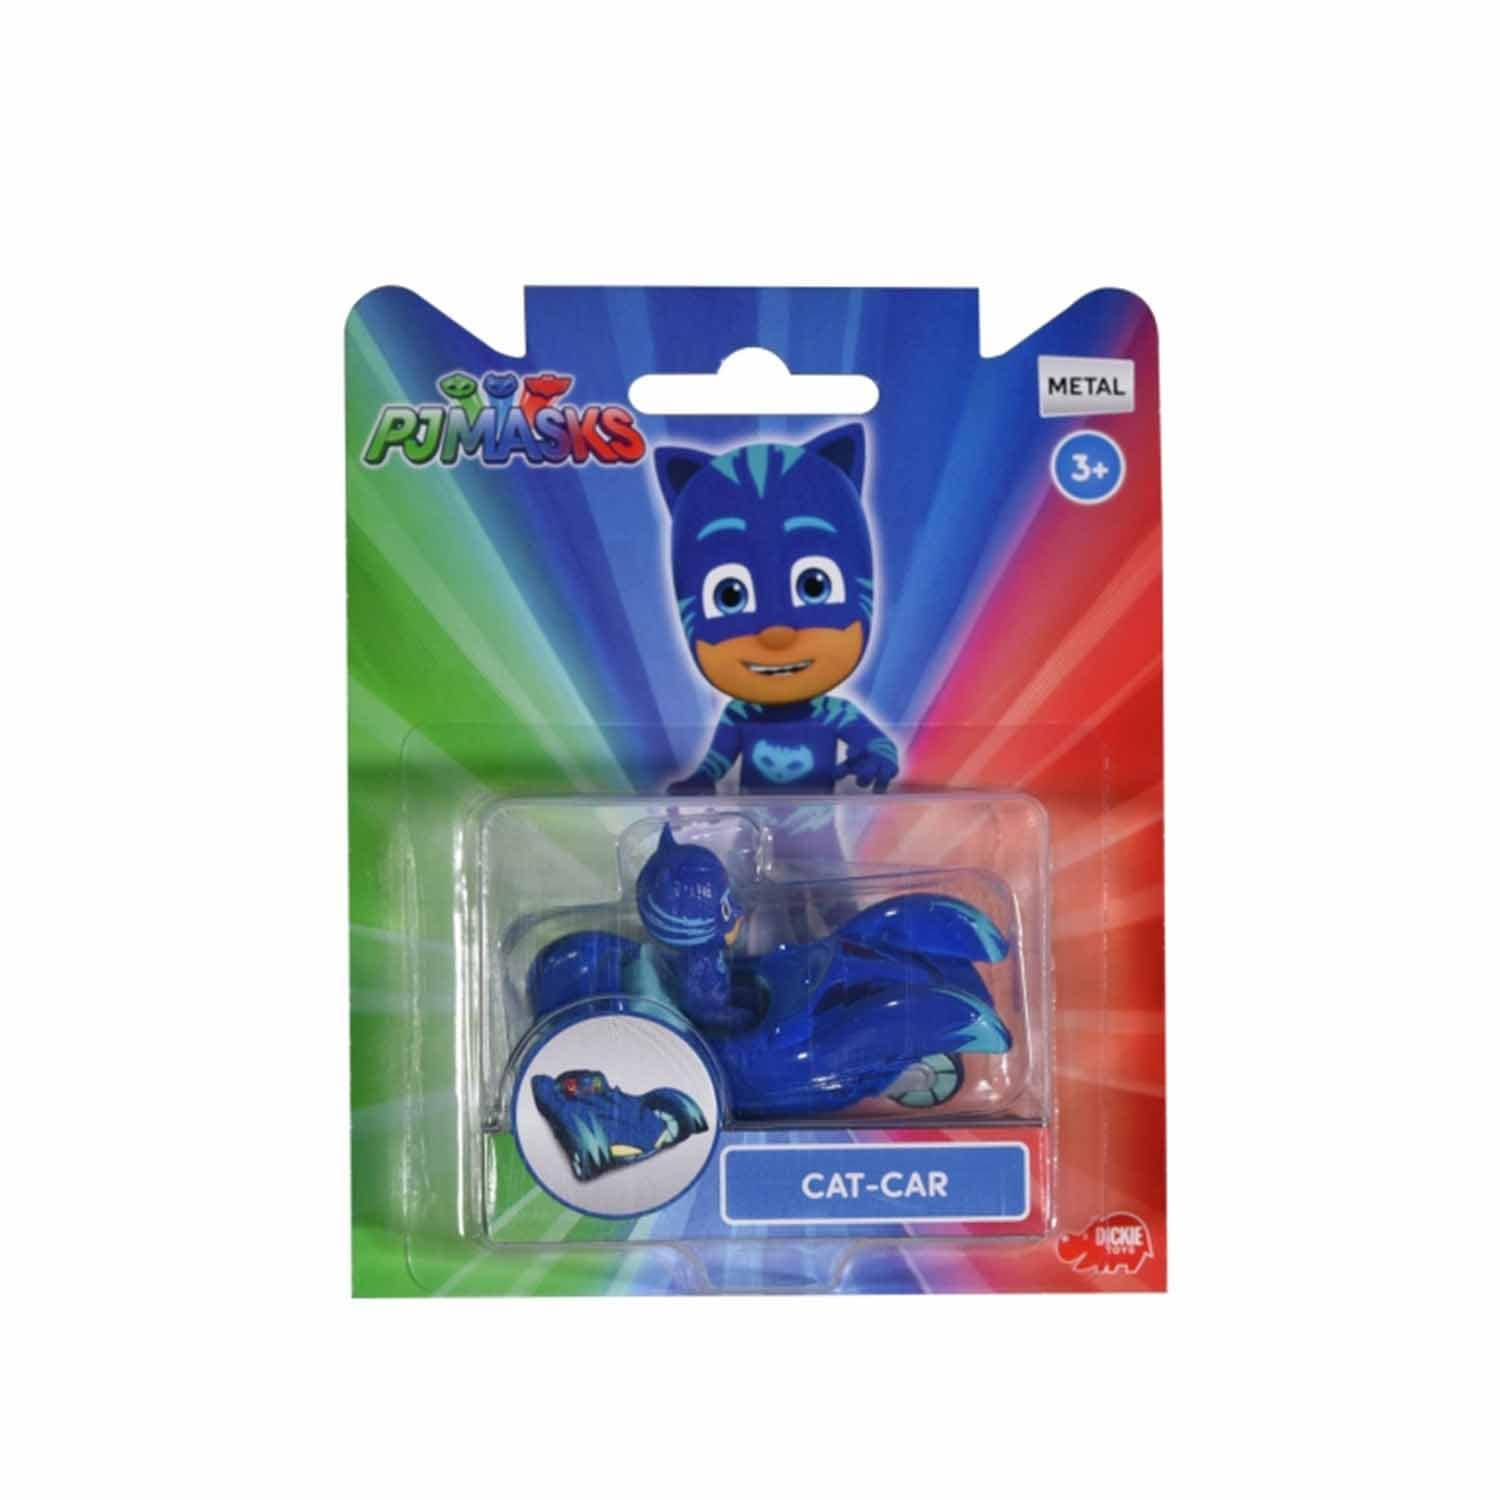 Dickie PJ Mask Single Pack Cat-Car